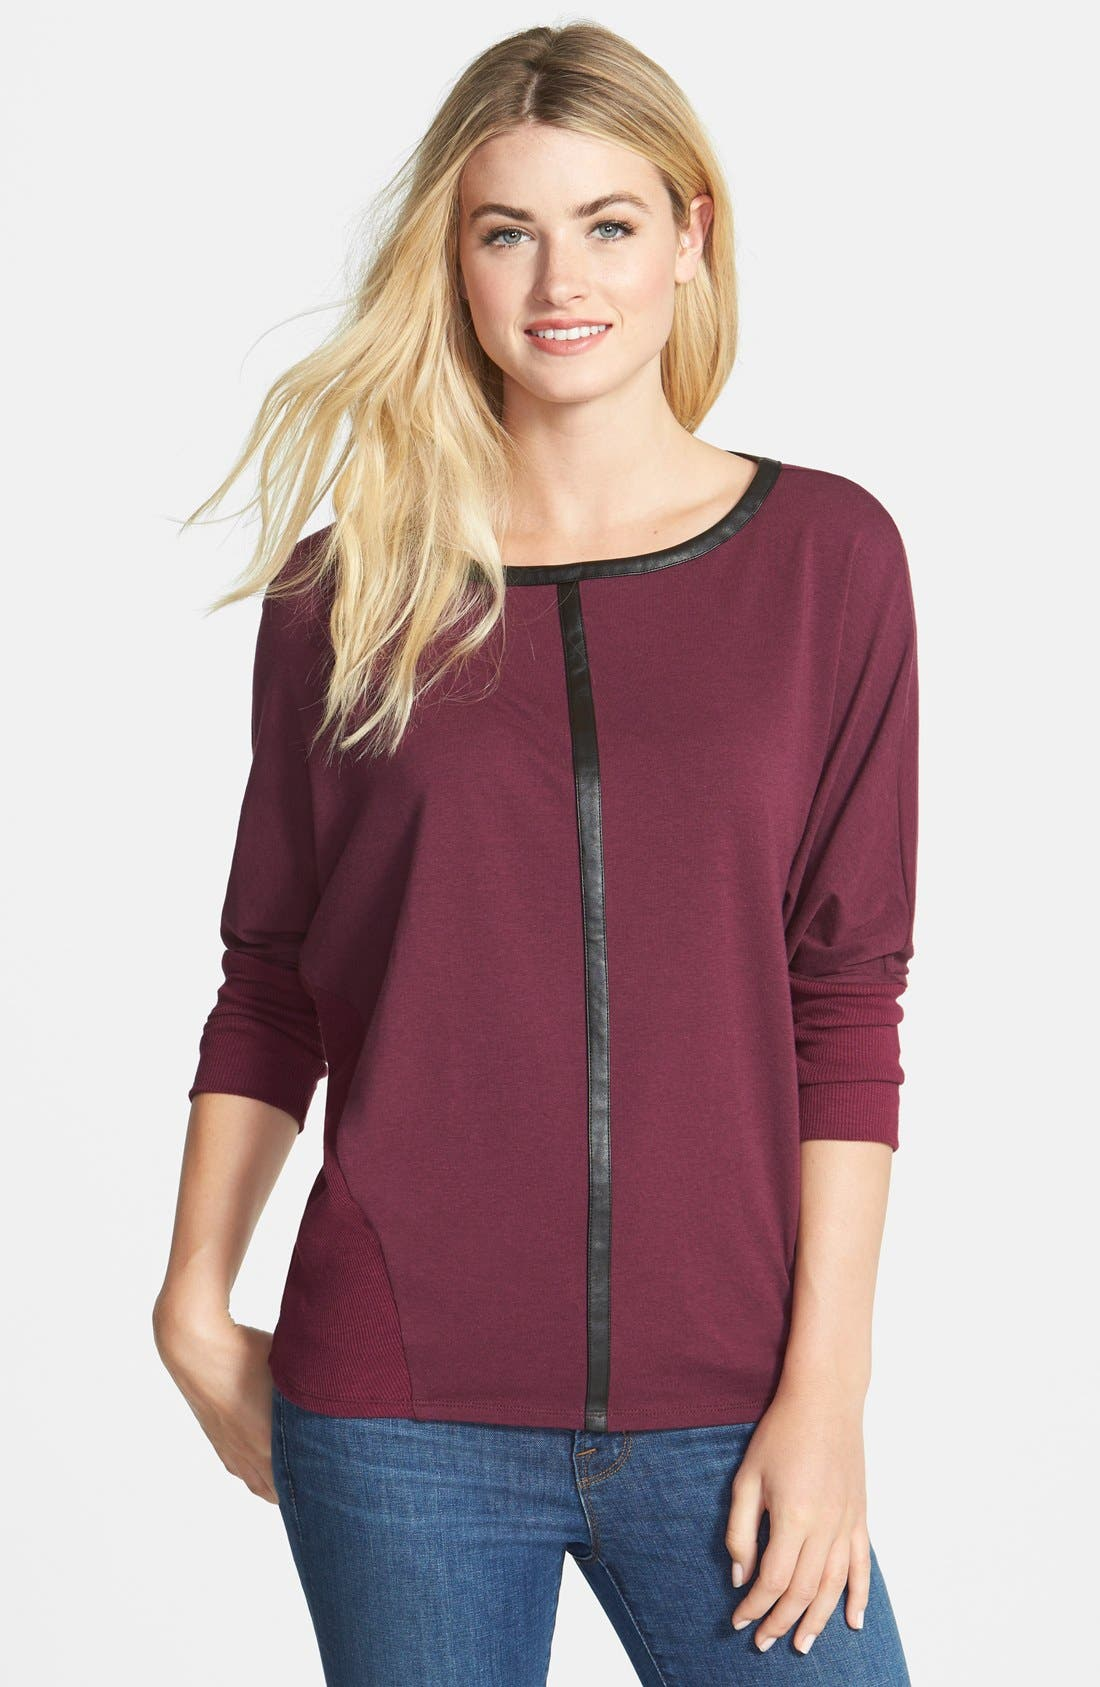 Alternate Image 1 Selected - Two by Vince Camuto 'Saturday' Faux Leather Trim Jersey Shirt